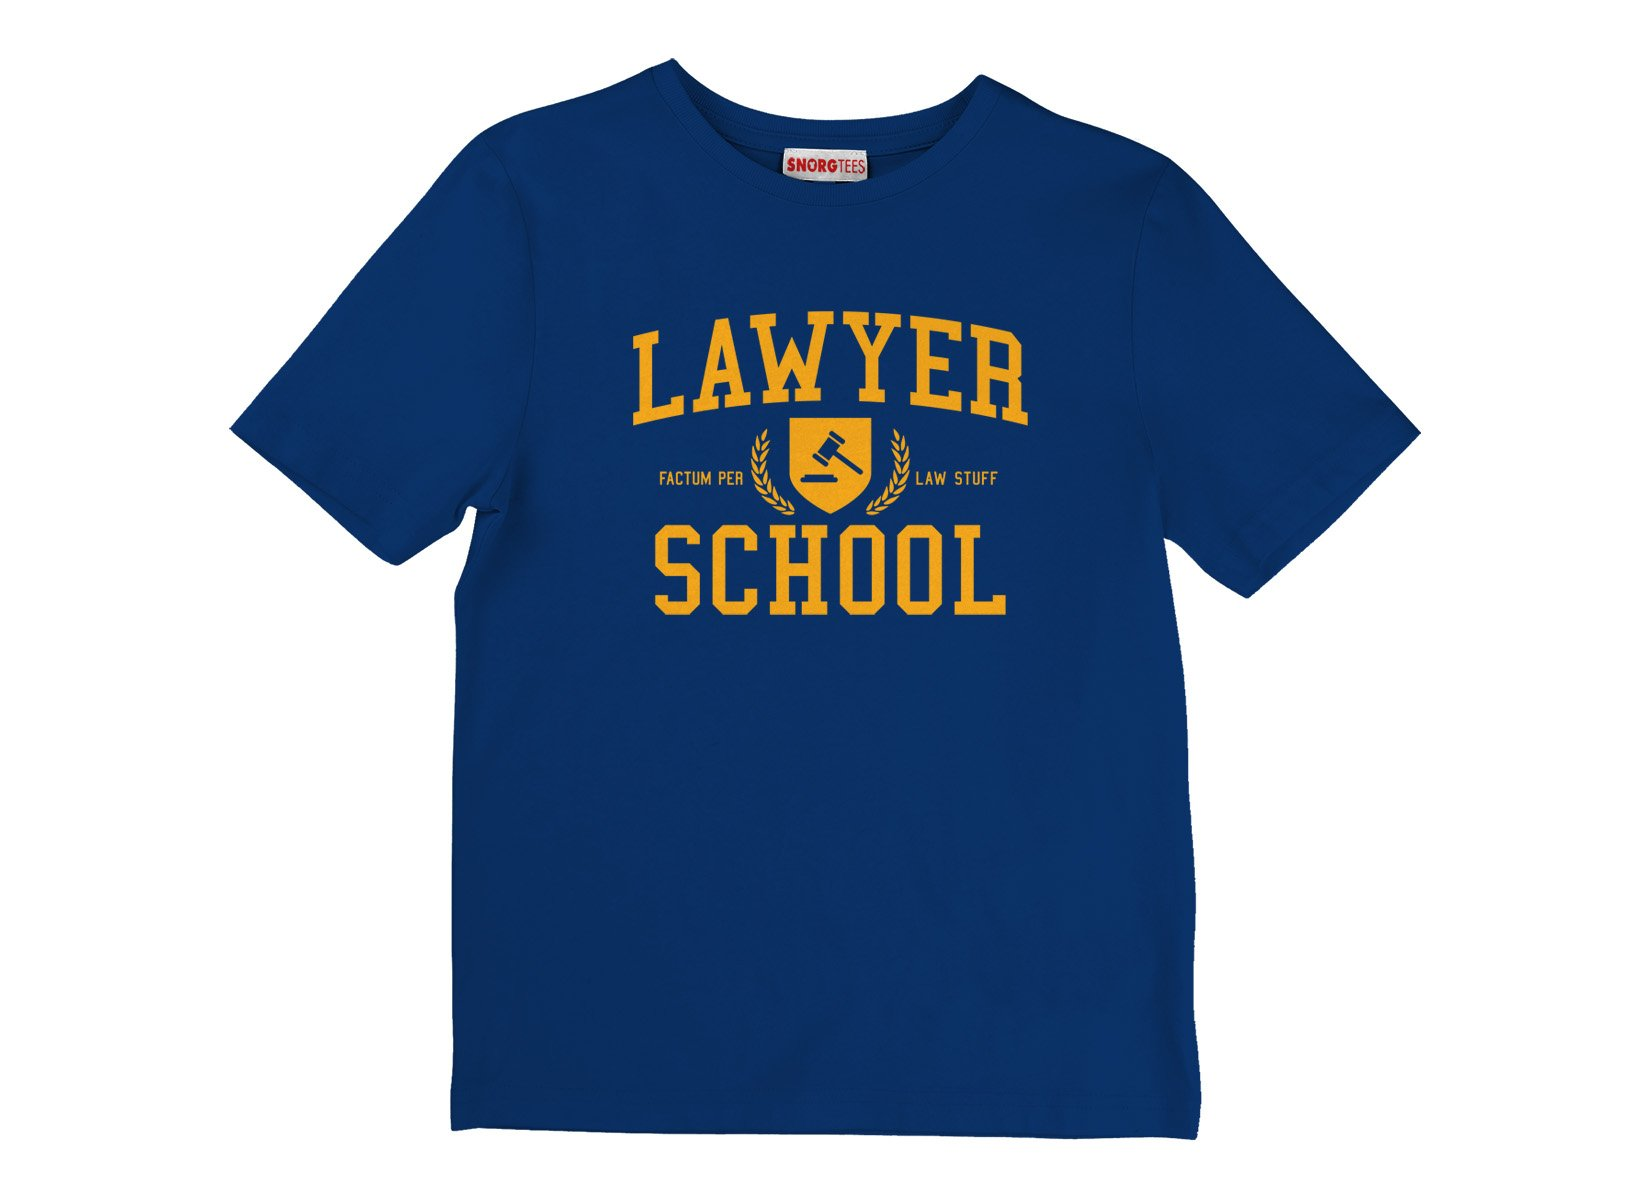 Lawyer School on Kids T-Shirt